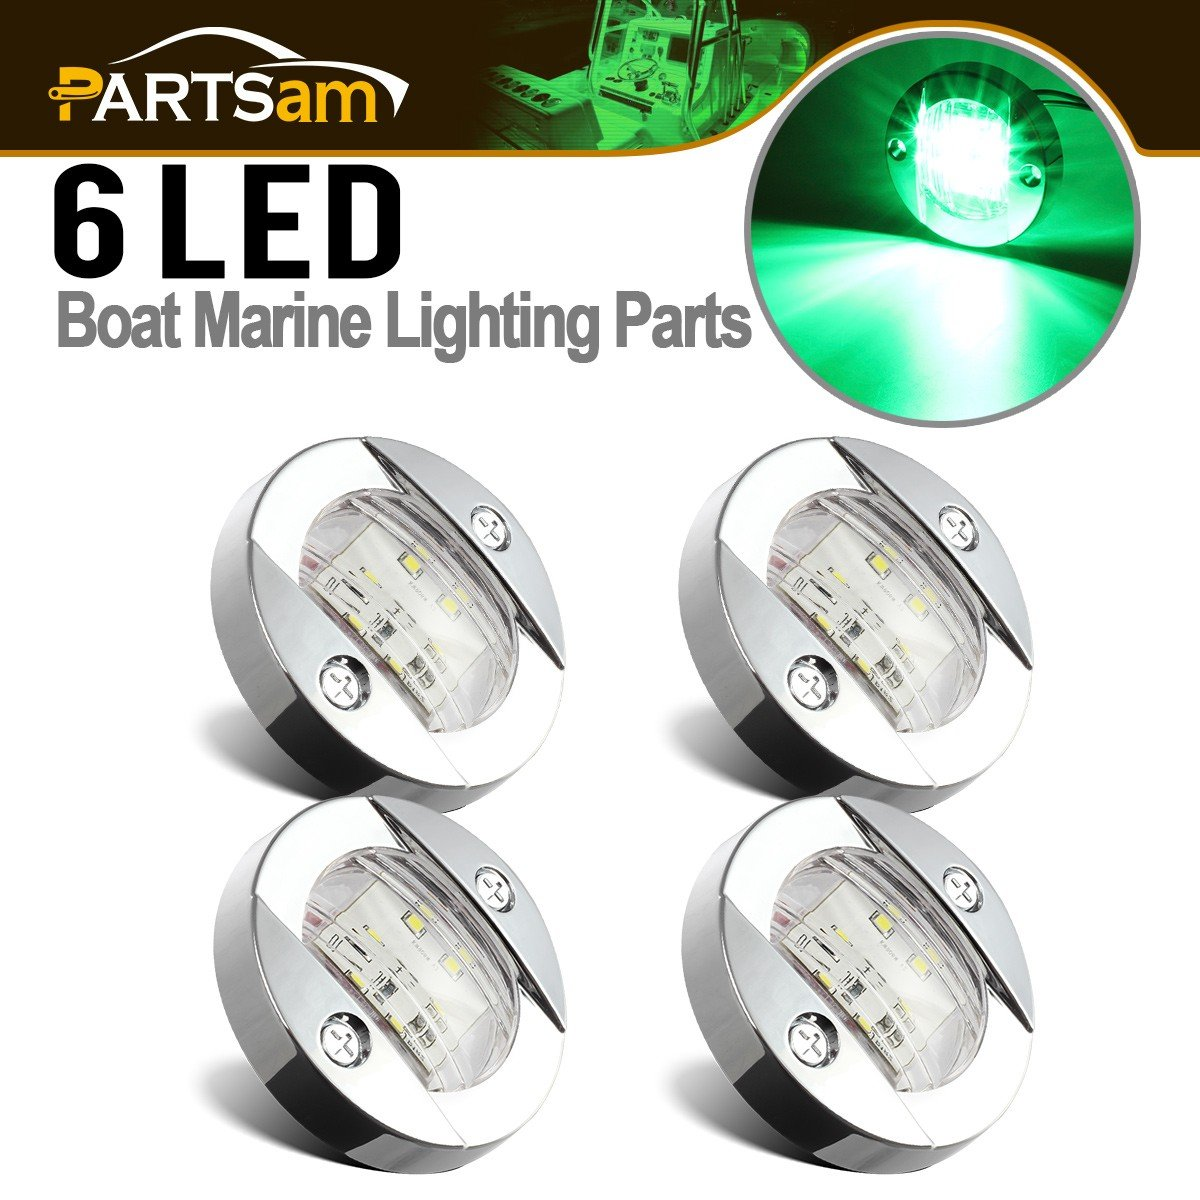 Partsam 3'' inch 12V DC Marine Boat Yacht Transom Anchor Stern Green 6 LED Navigation Light Lamp Clear Lens Chrome Bezel Round (Pack of 4)